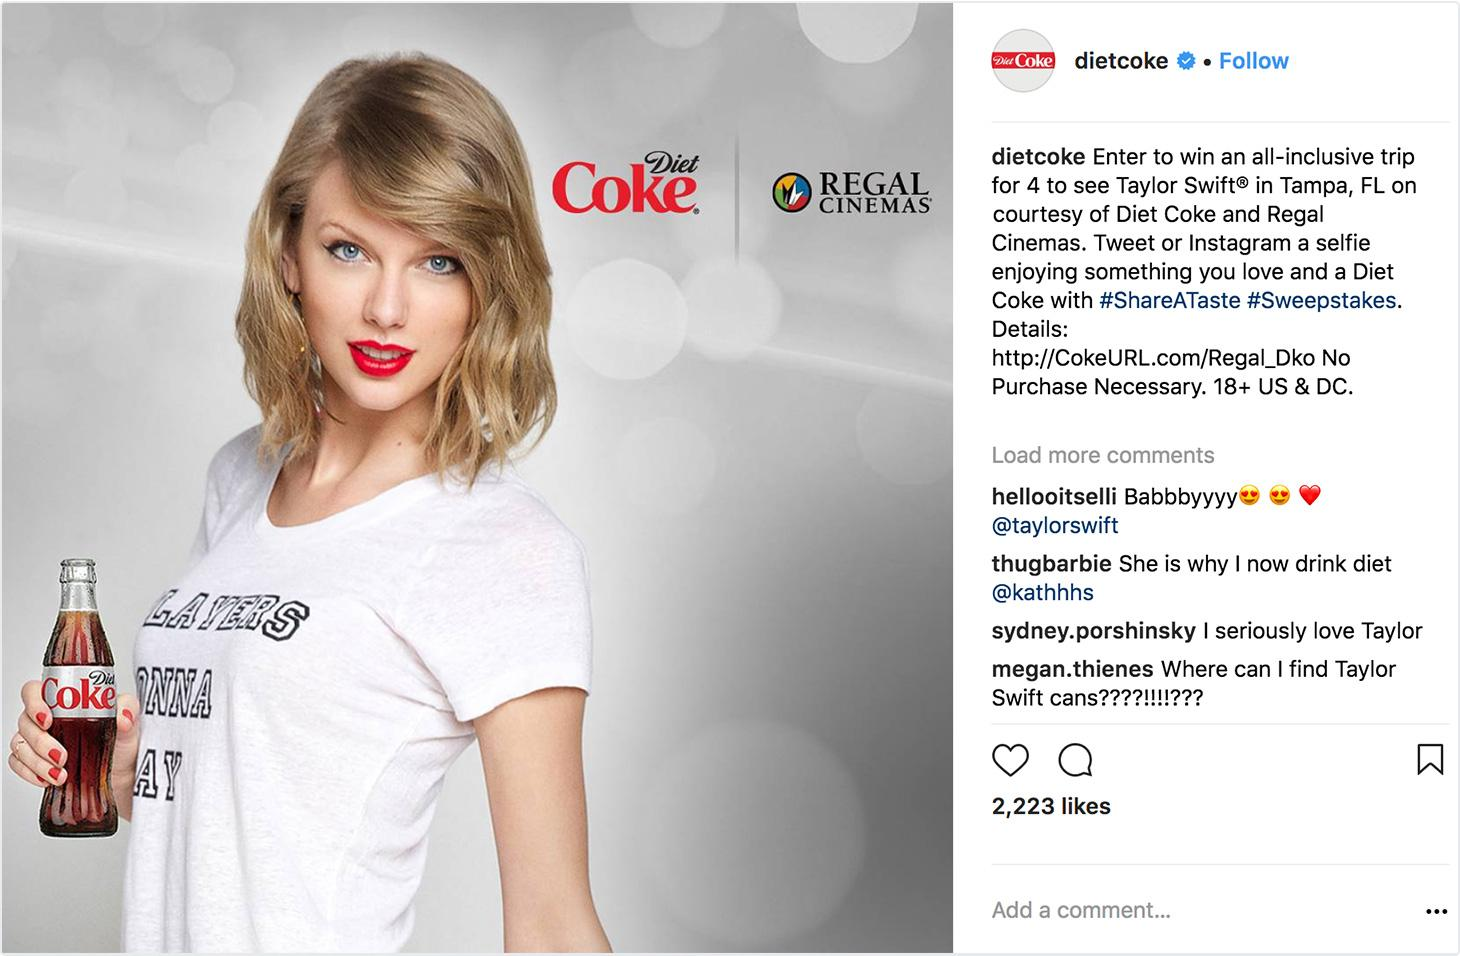 Celebrities like Taylor Swift advertise a wide range of products.